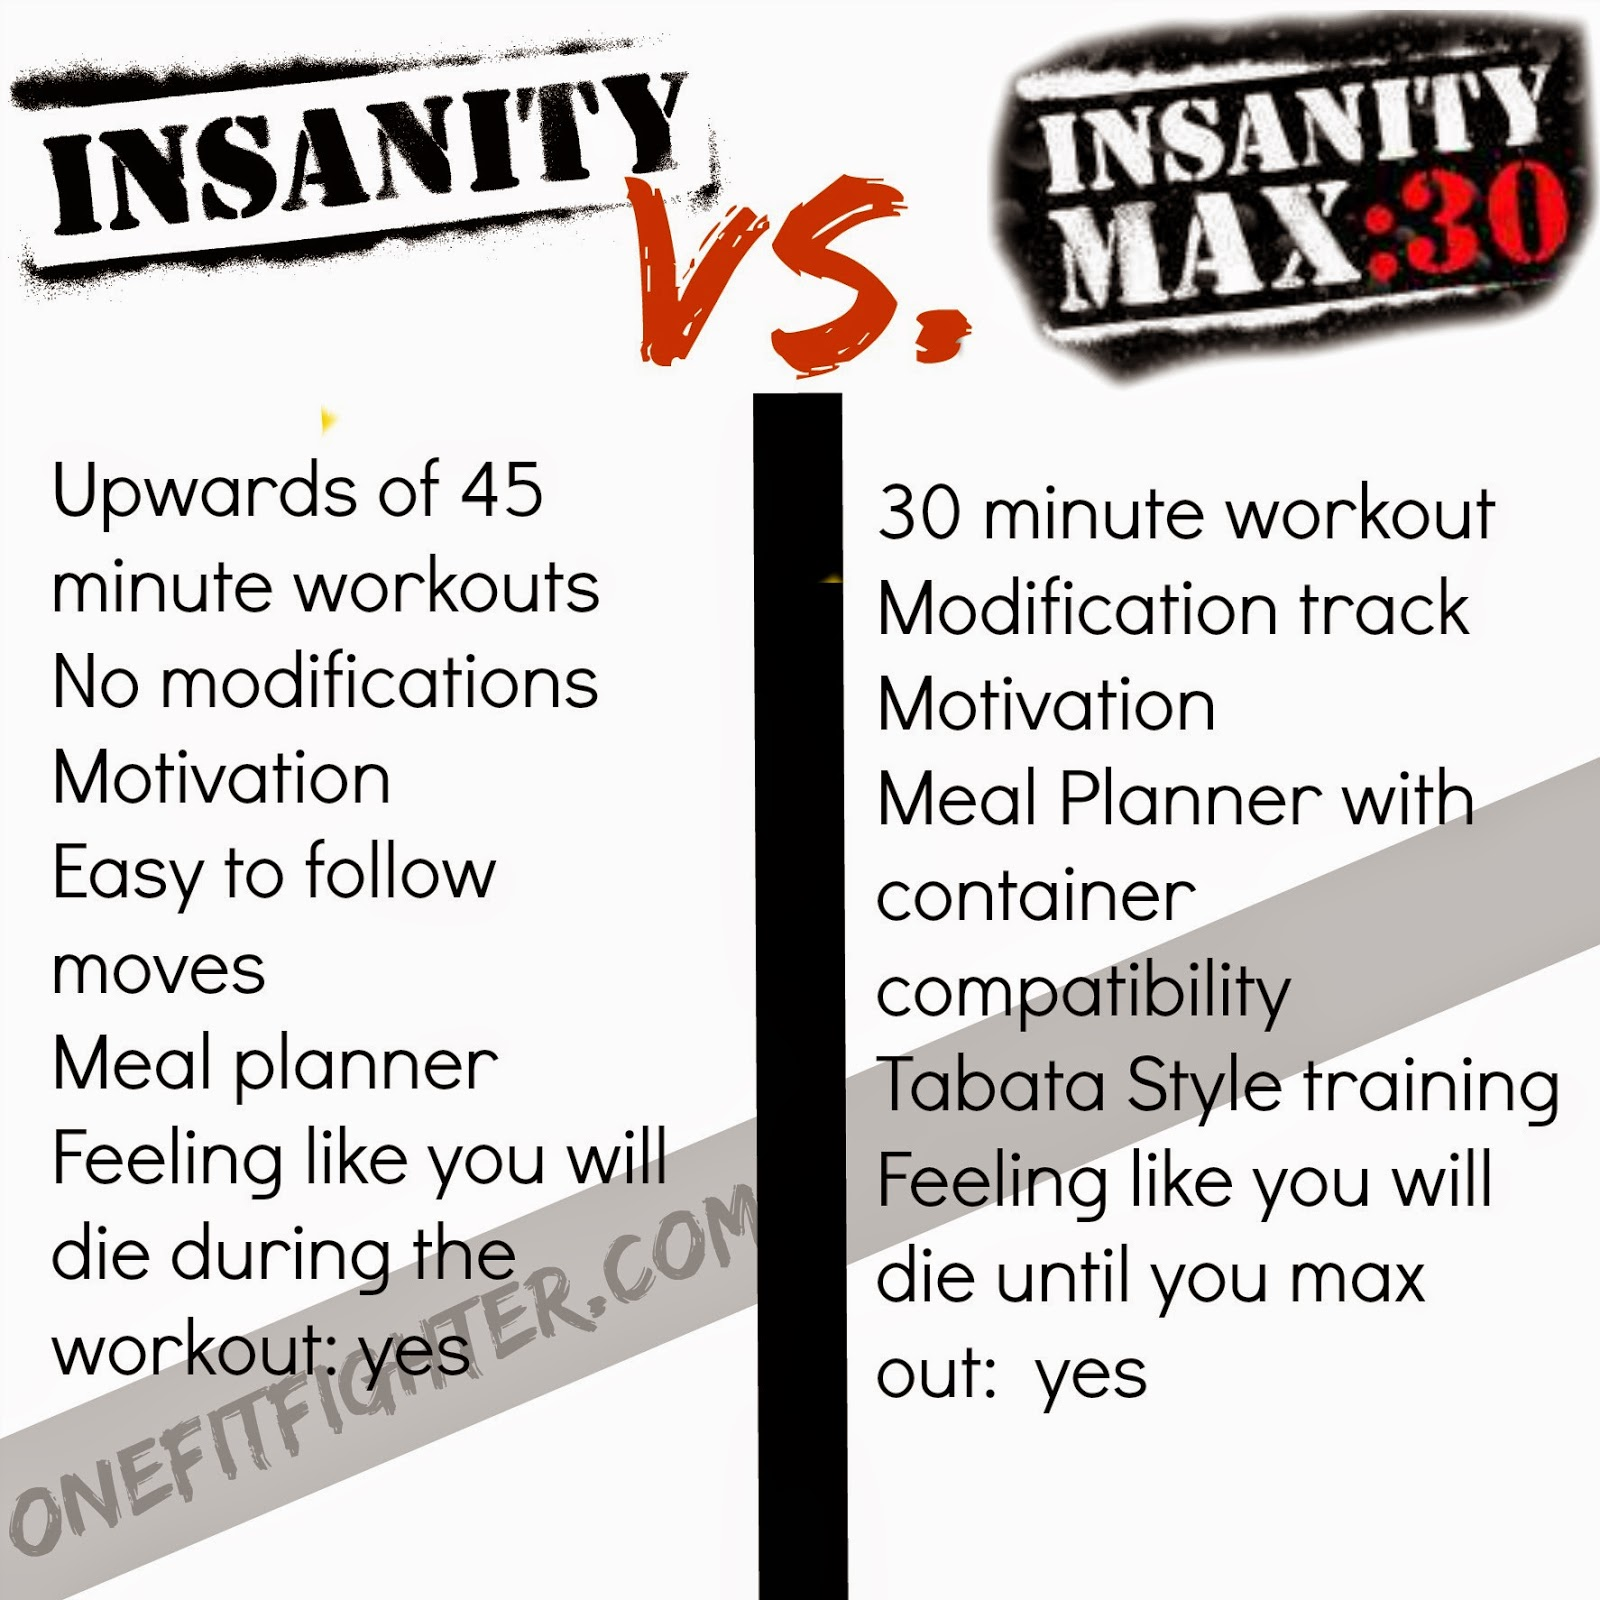 insanity vs. max30, new shaun t workout